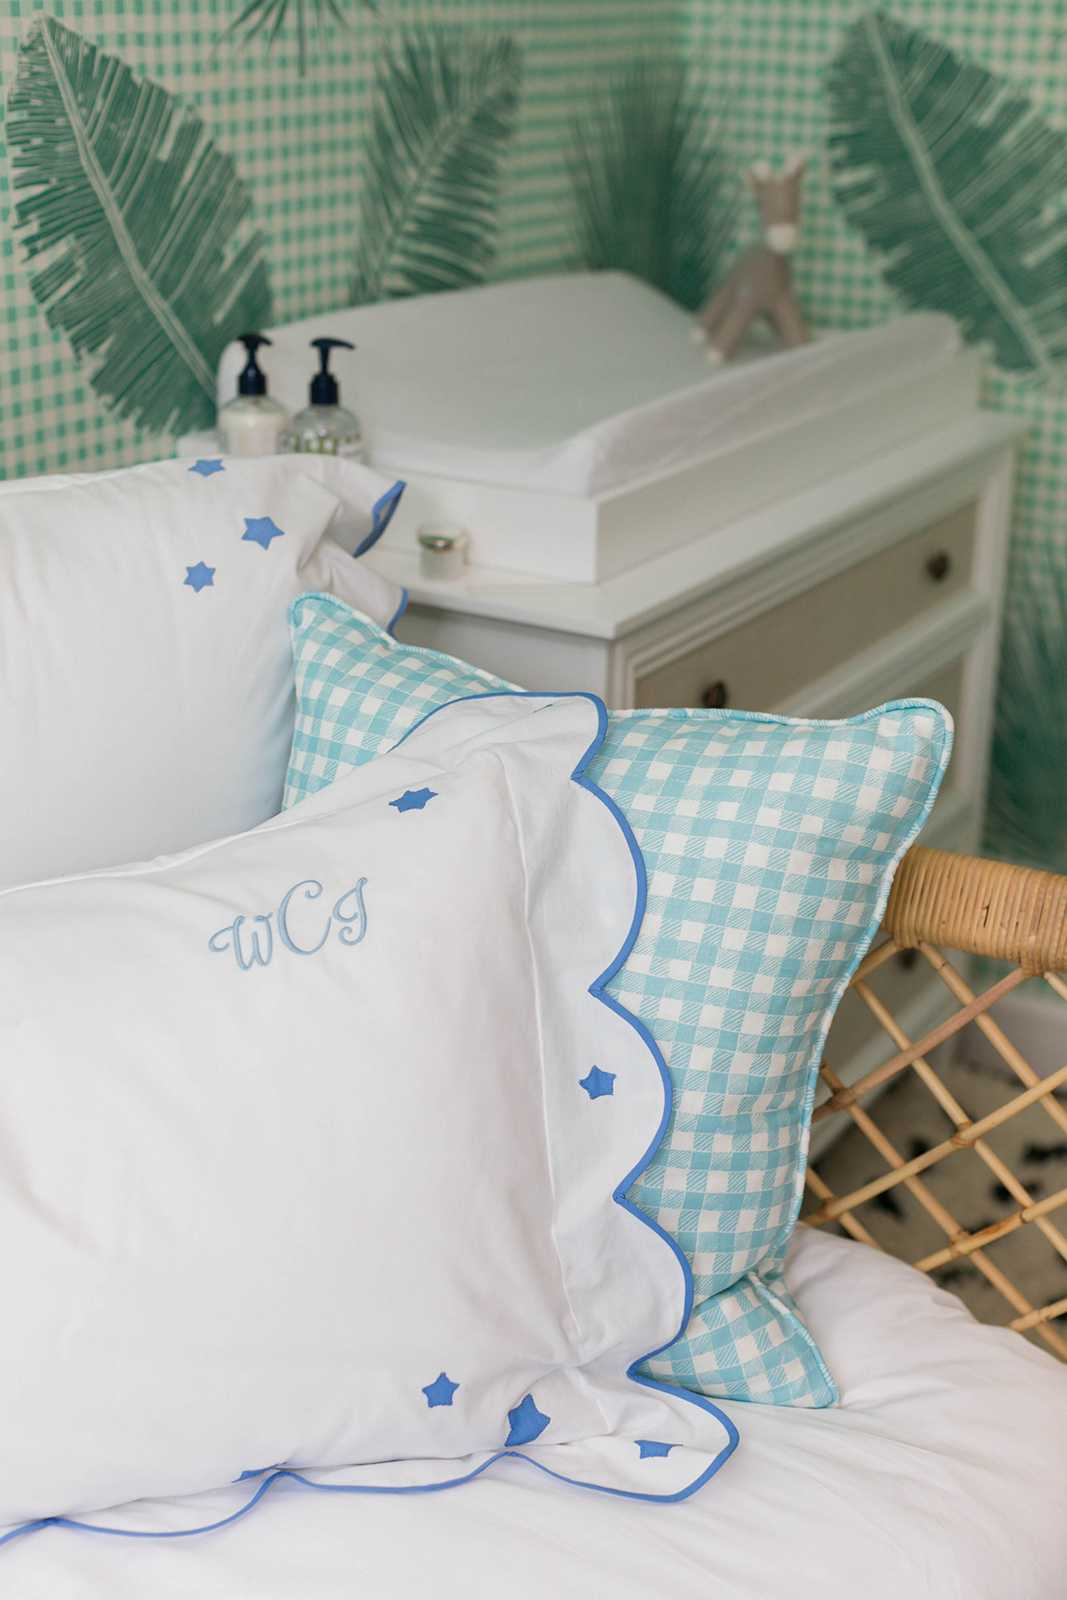 Block Print Gingham Pillow in Light Blue, Interiors by Sharon Lee, Photo by Mekina Saylor